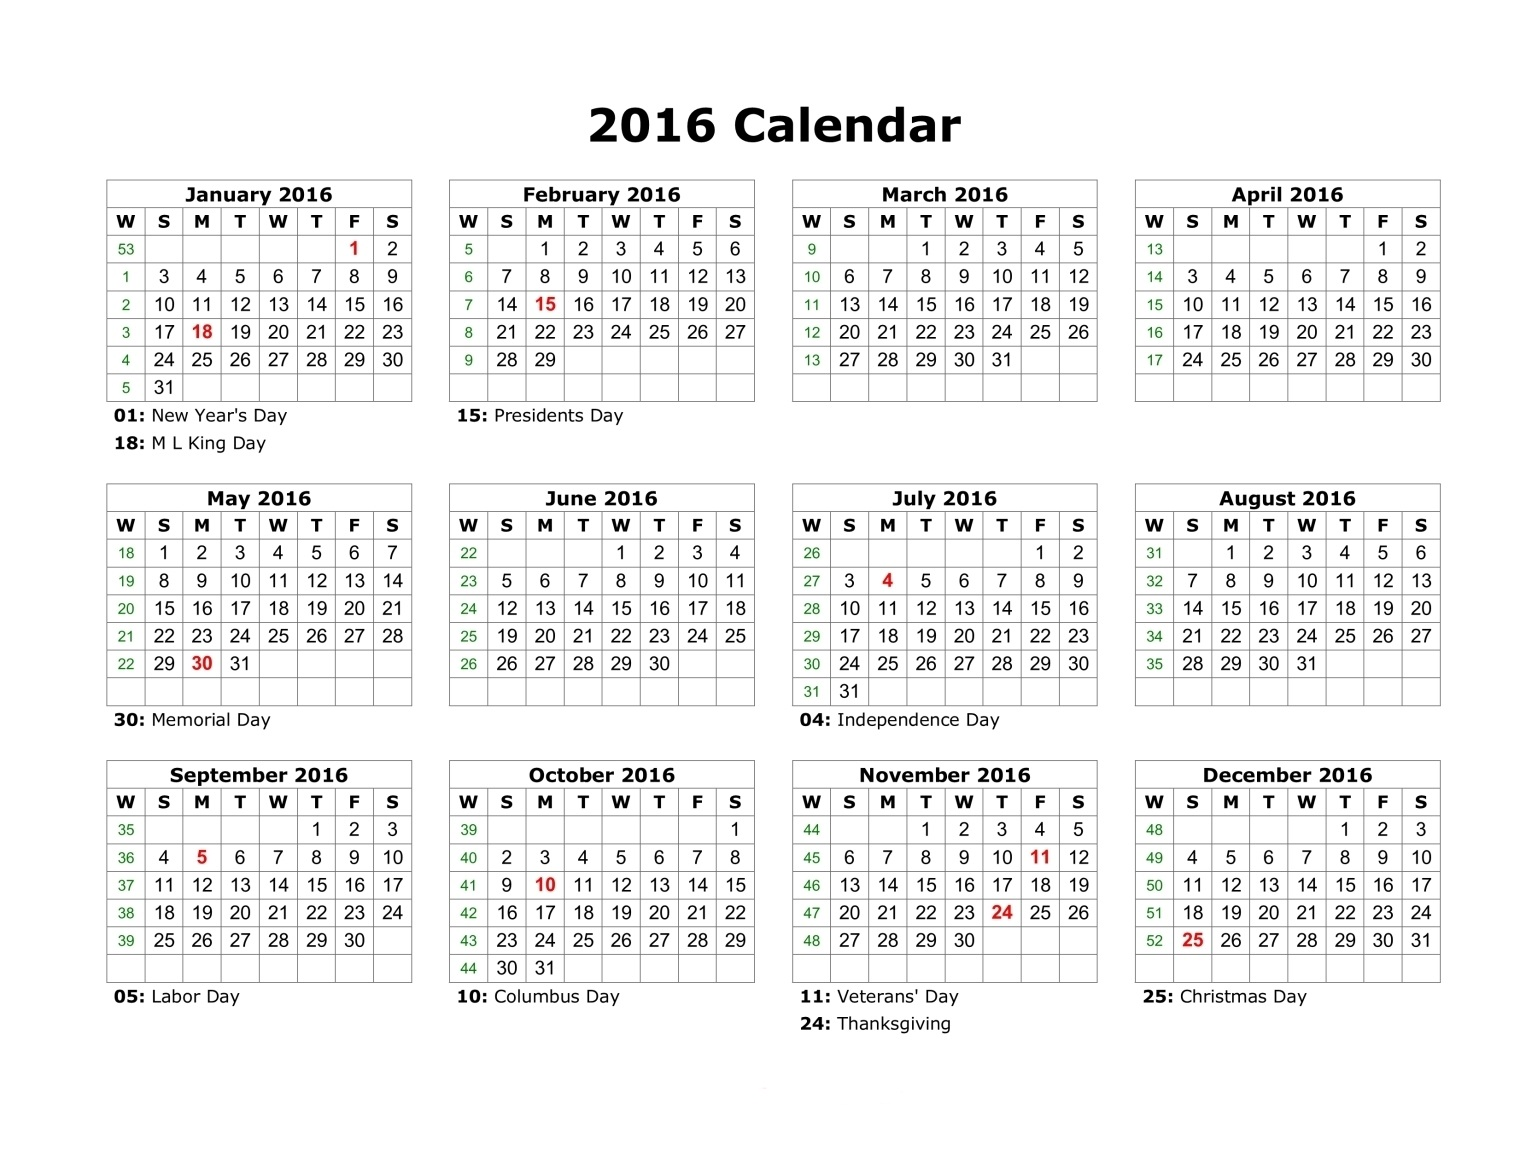 Calendar South Africa Printable : Calendar printable with south africa holidays